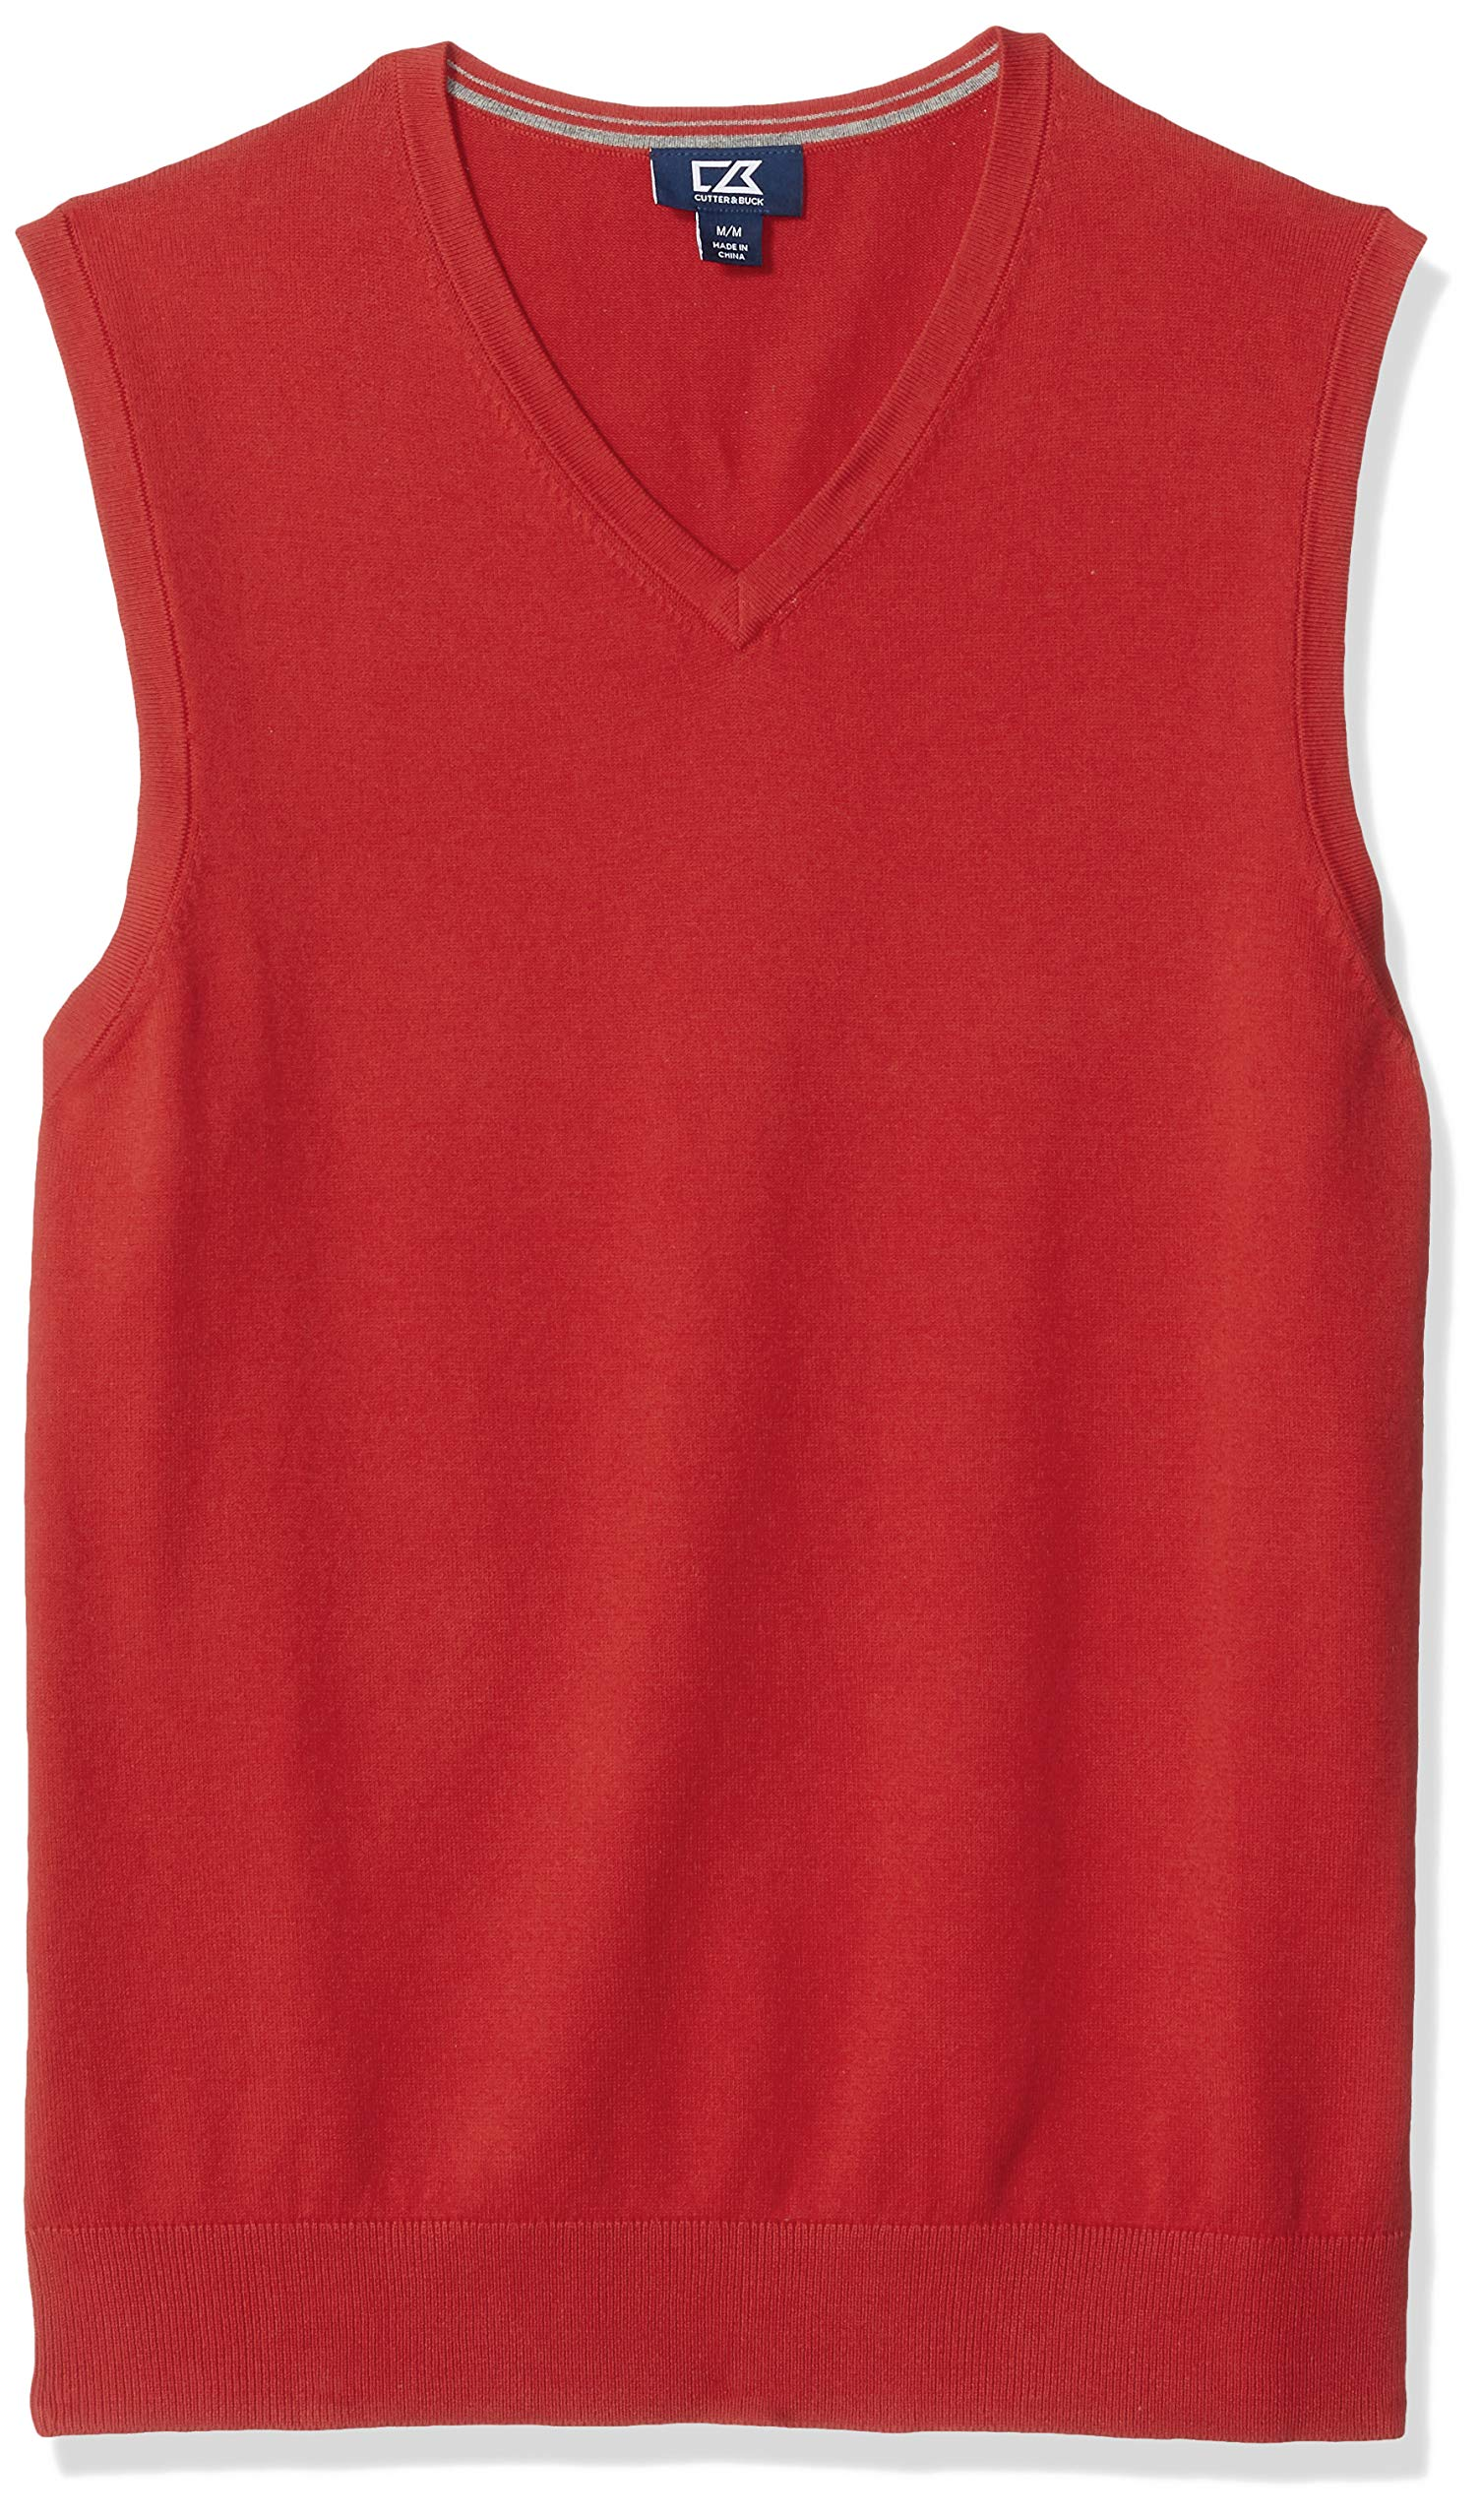 Cutter & Buck Men's Cotton-Rich Lakemont Anti-Pilling V-Neck Sweater Vest, red, XX-Large by Cutter